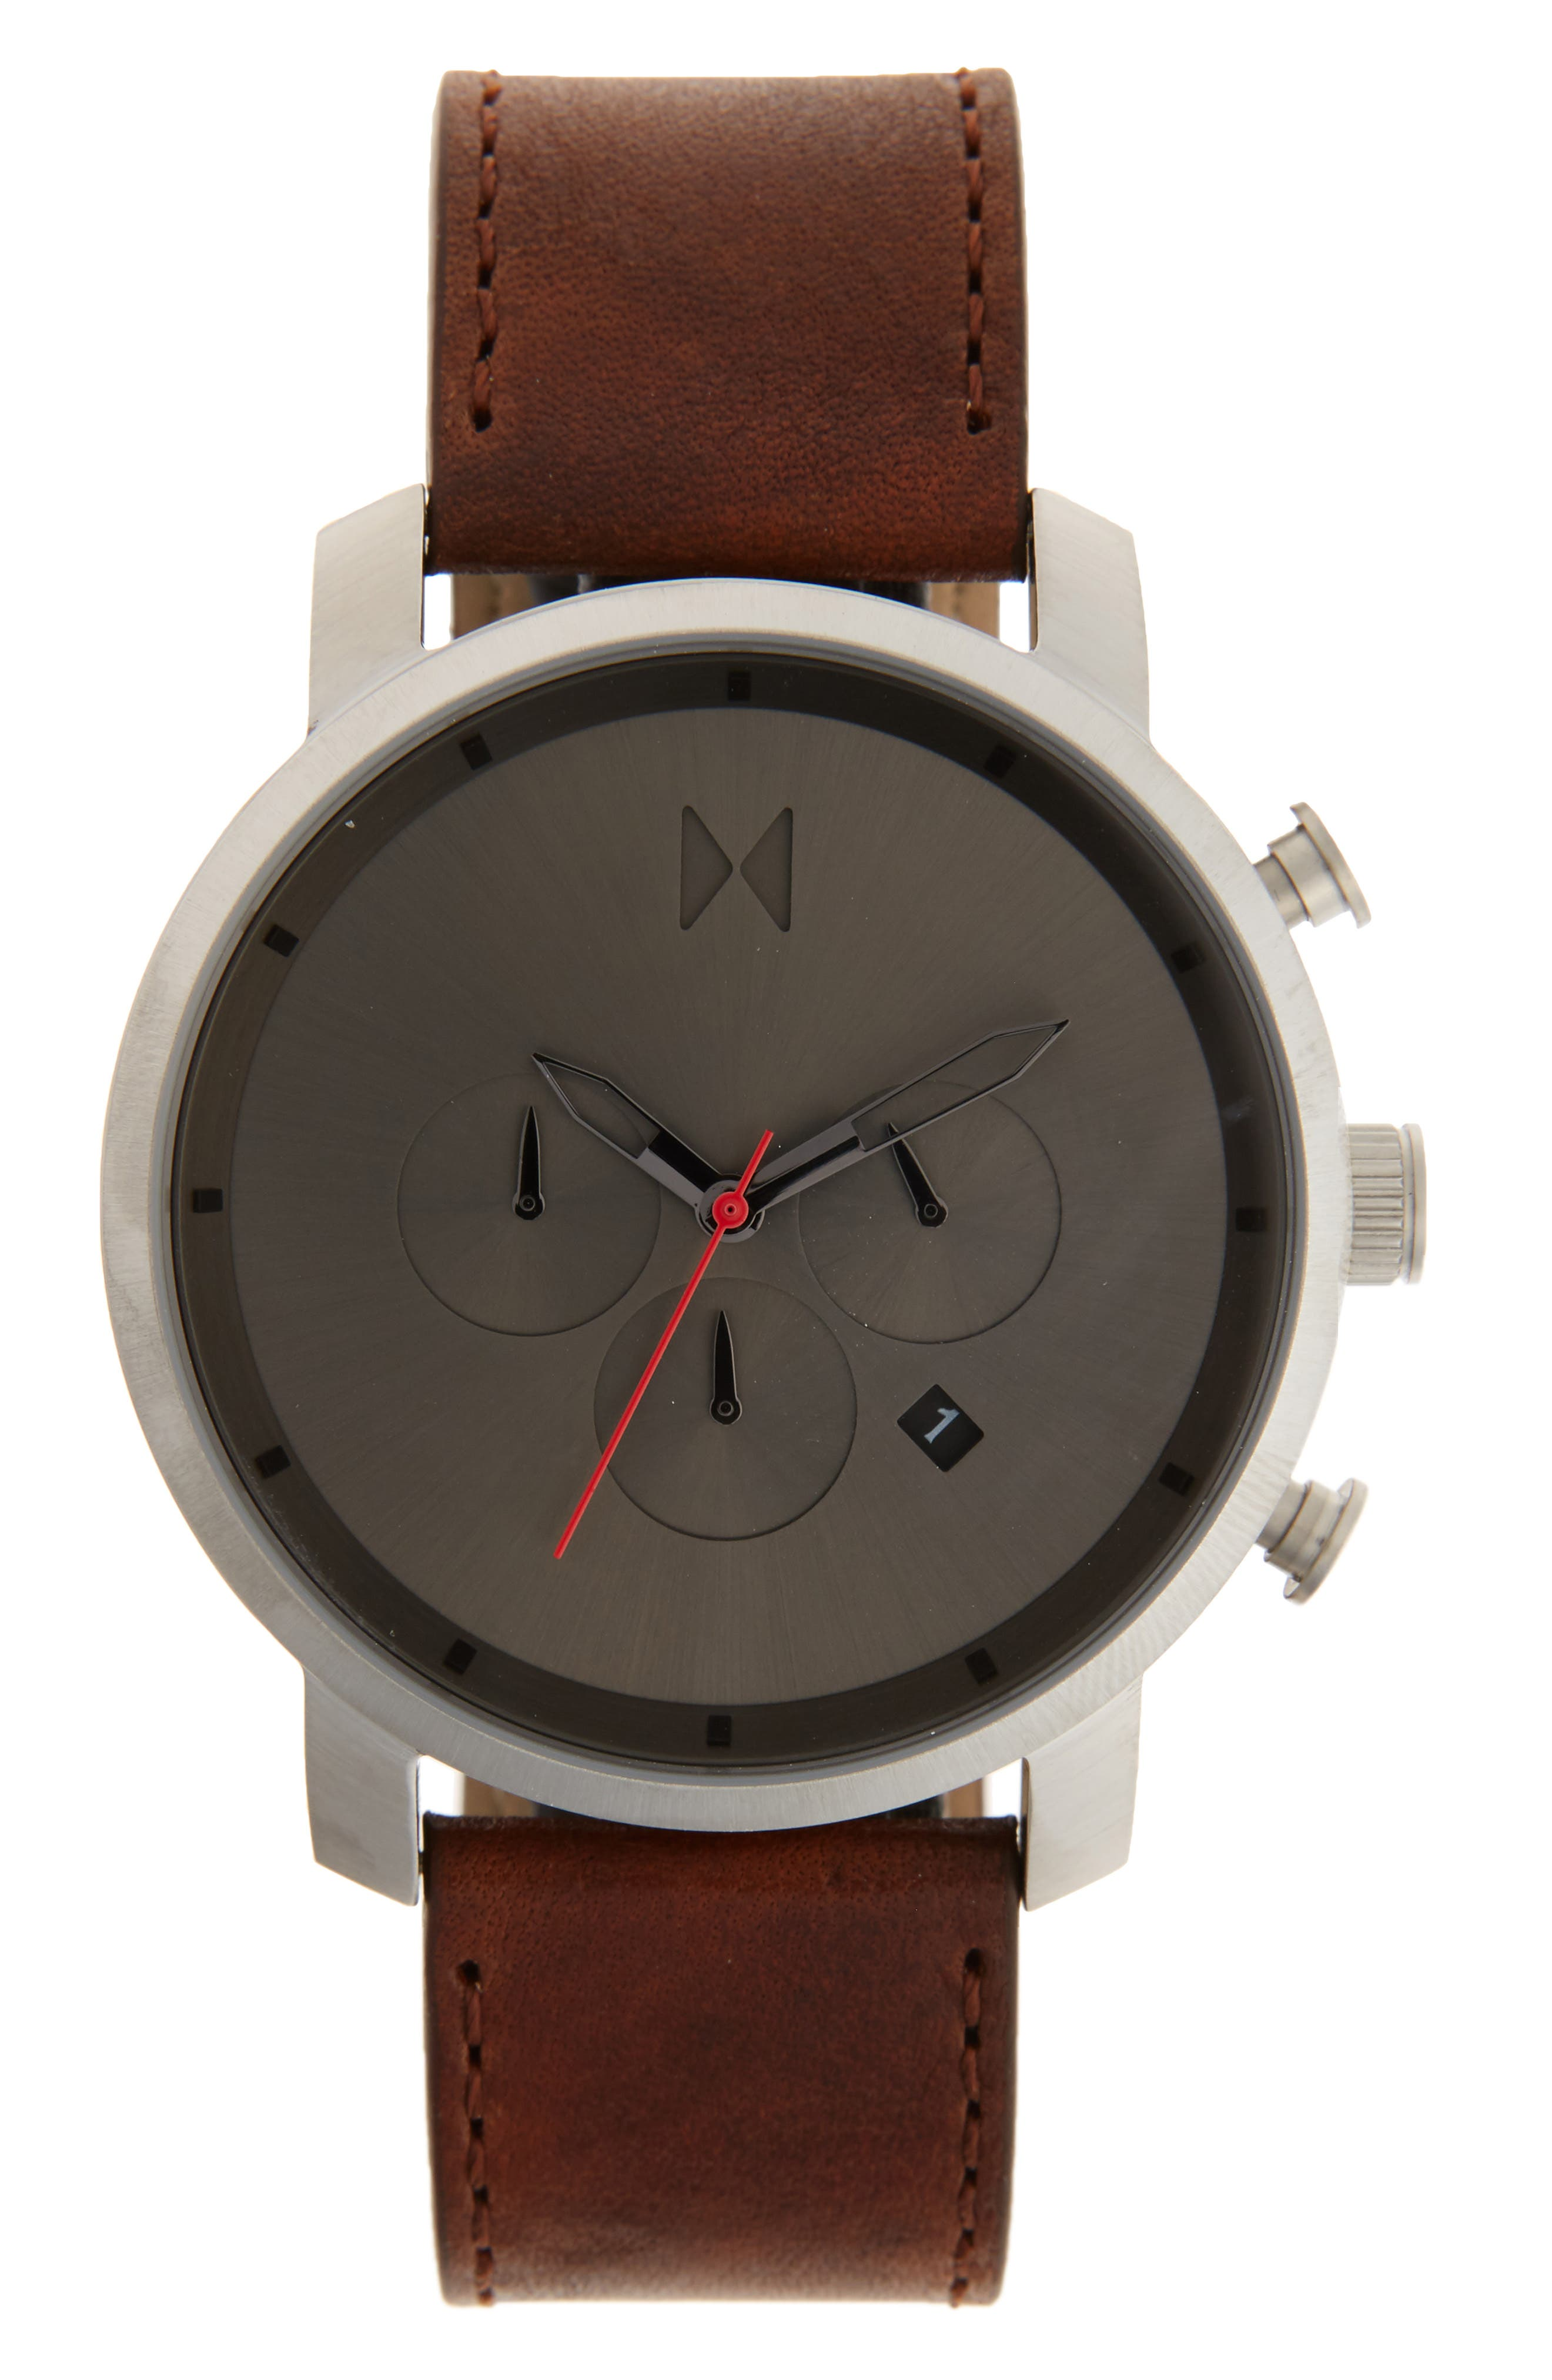 Main Image - MVMT Chronograph Leather Strap Watch, 45mm (Nordstrom Exclusive)